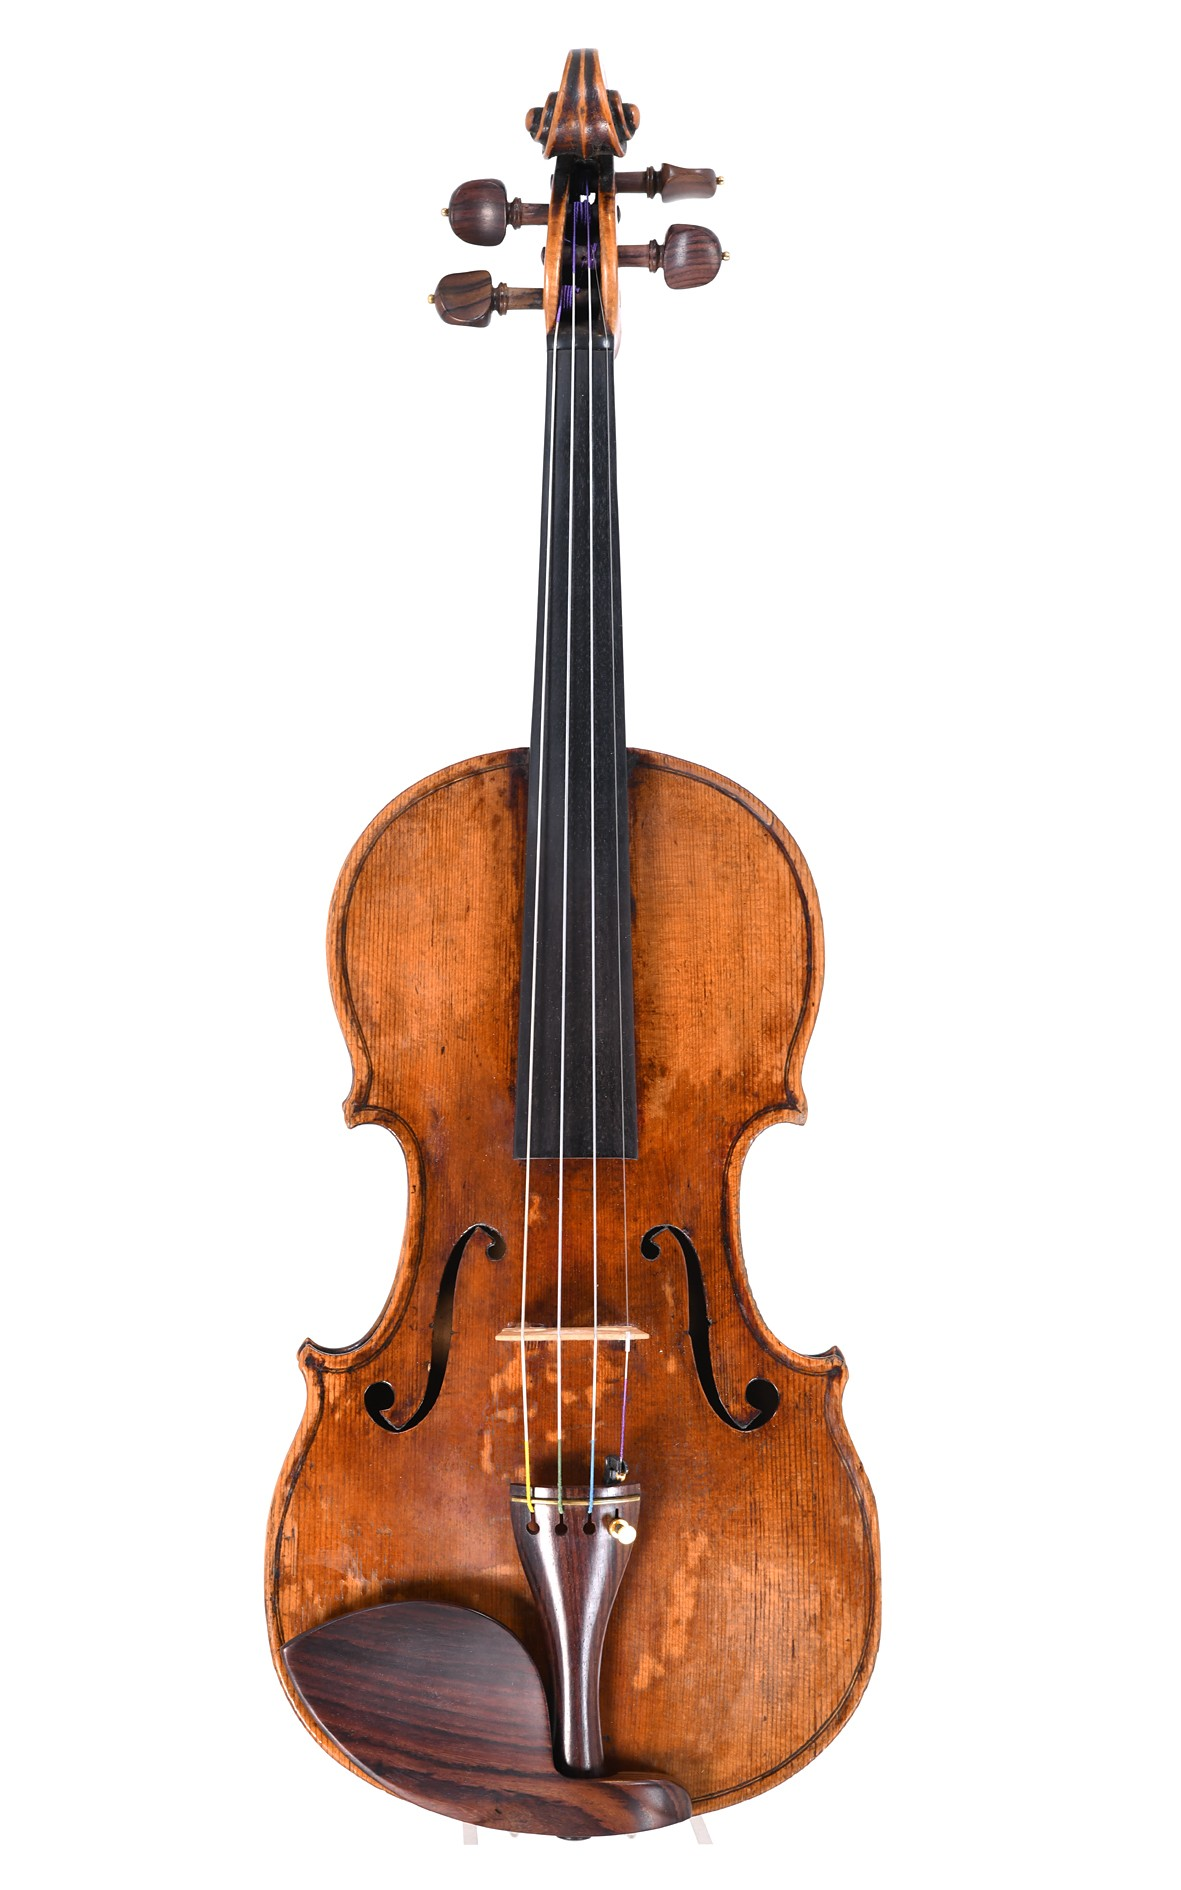 Master violin, probably from Prague, Johann Georg Hellmer replica